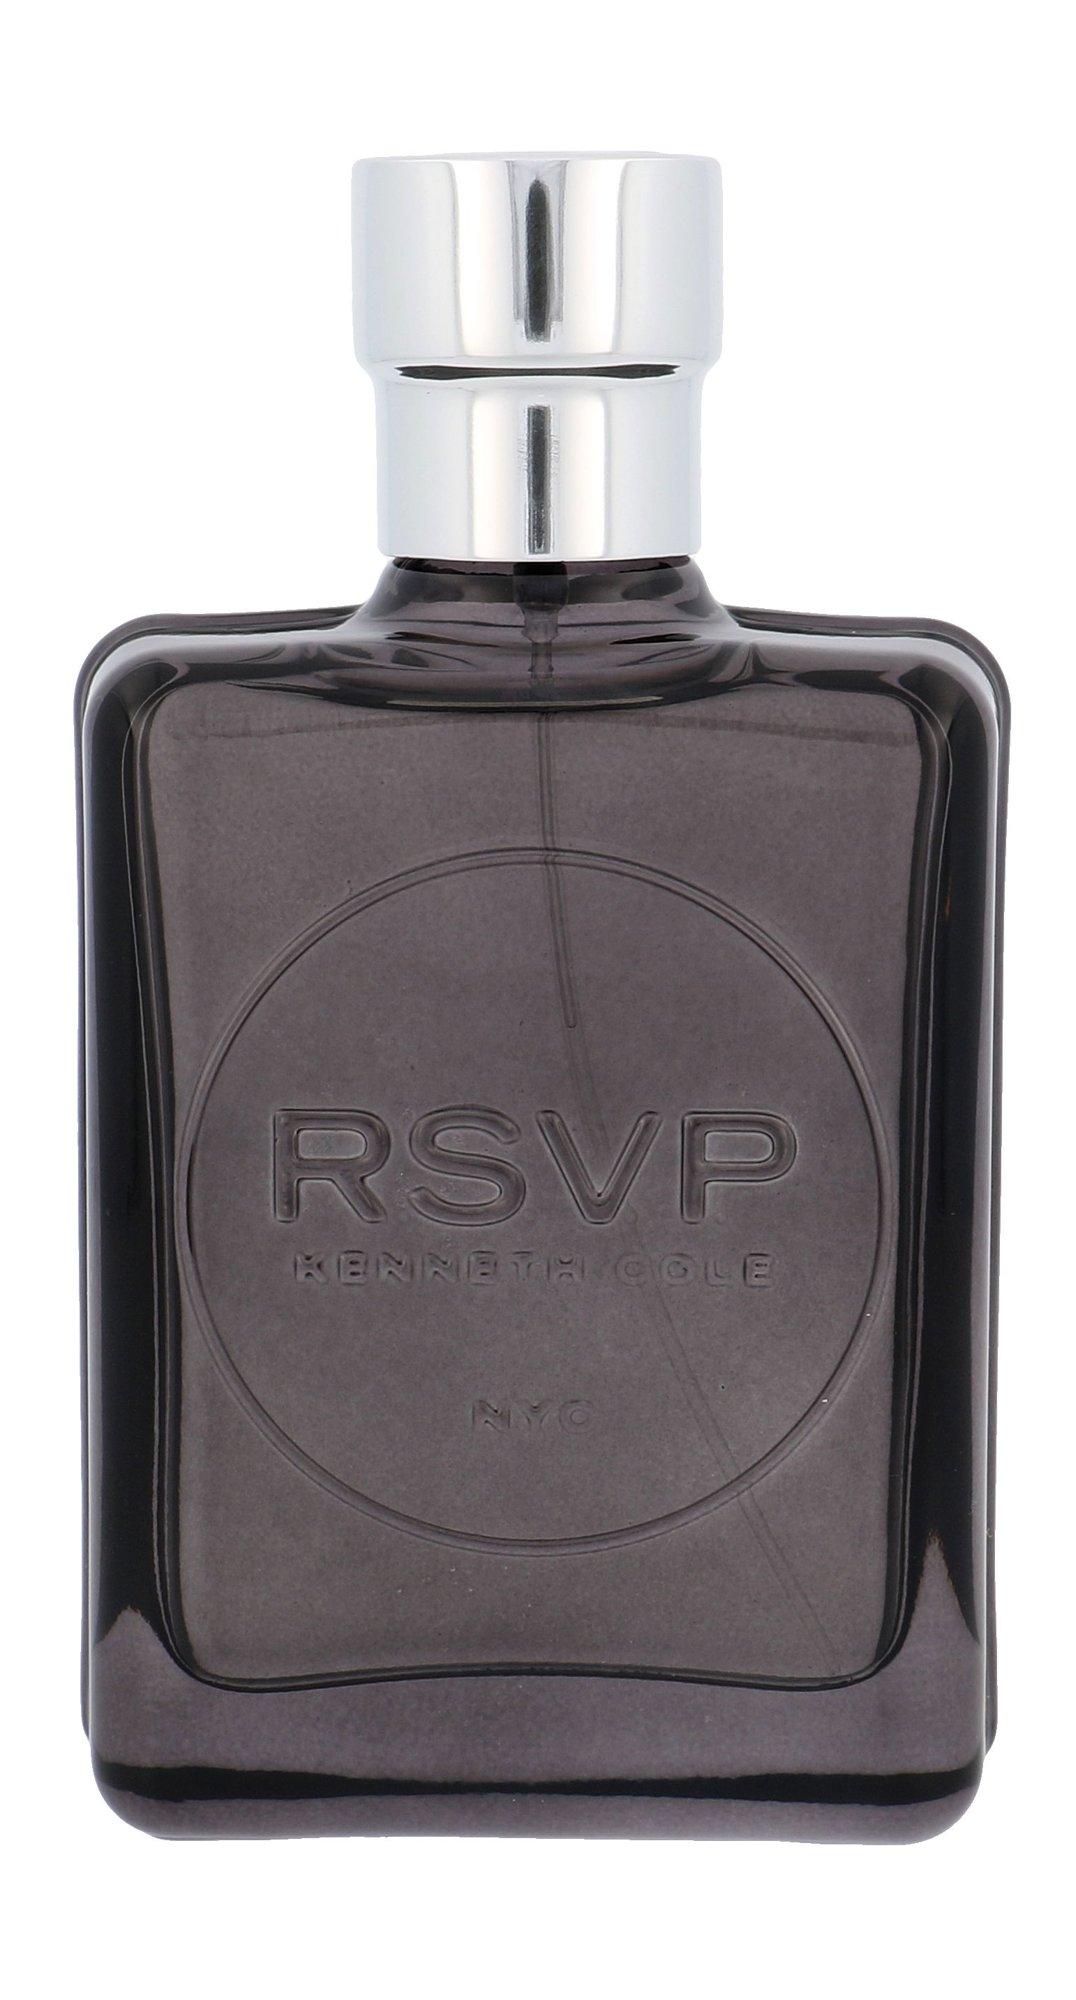 Kenneth Cole RSVP EDT 100ml